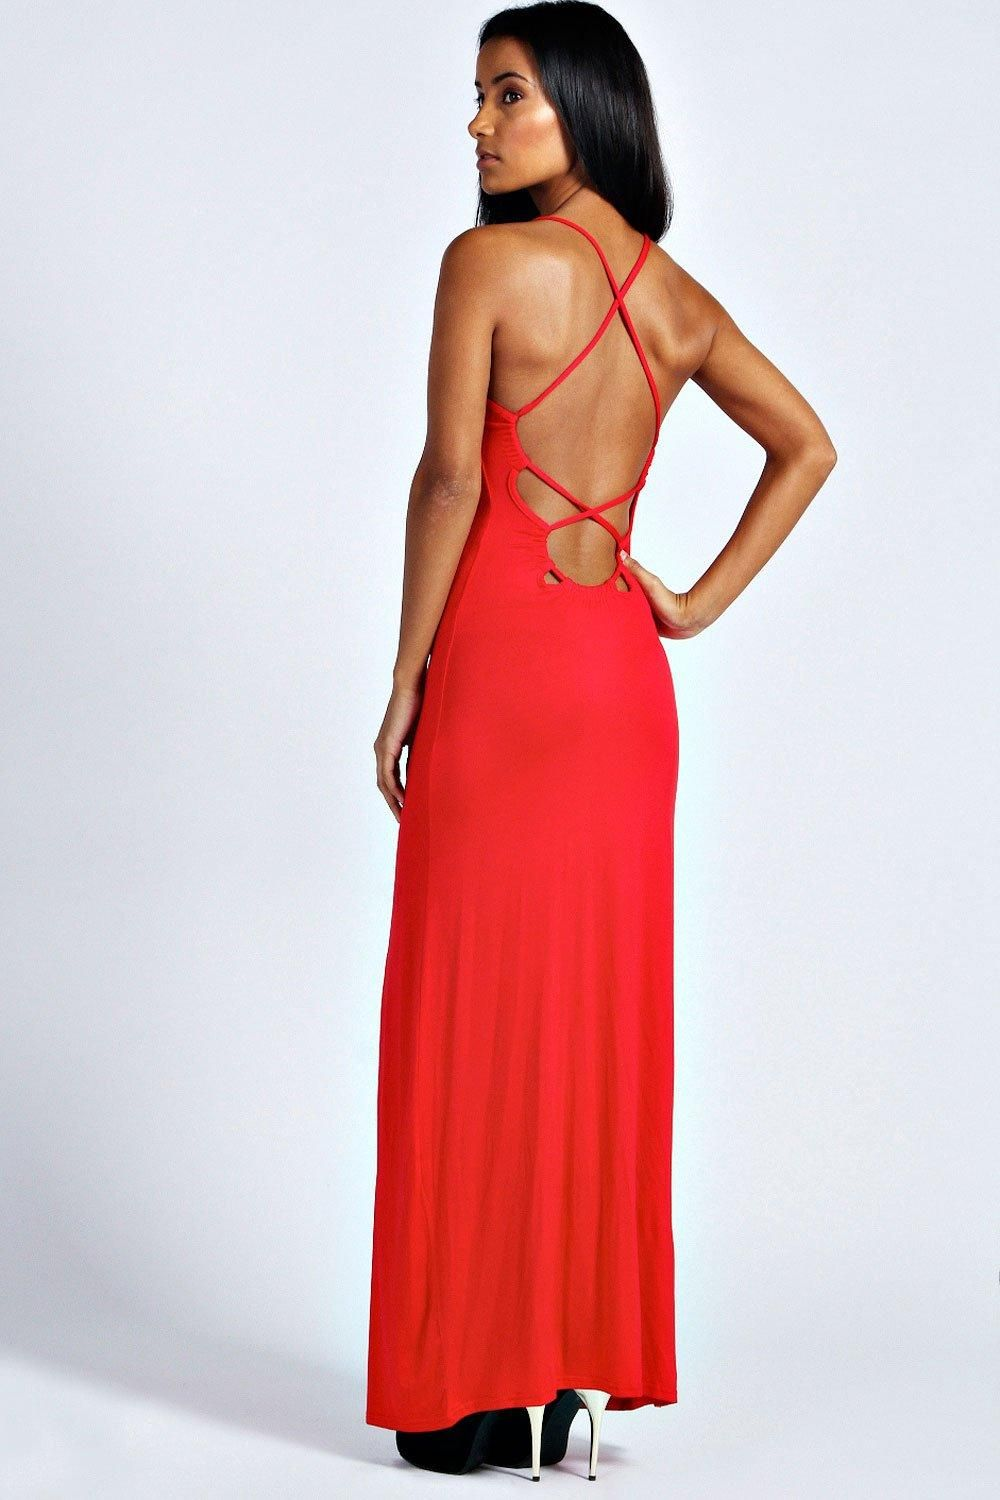 Evening Red Maxi Dress Discount Evening Dresses Under 100 The Latest Clothing Online Red Dress Maxi Discount Evening Dresses Evening Dresses